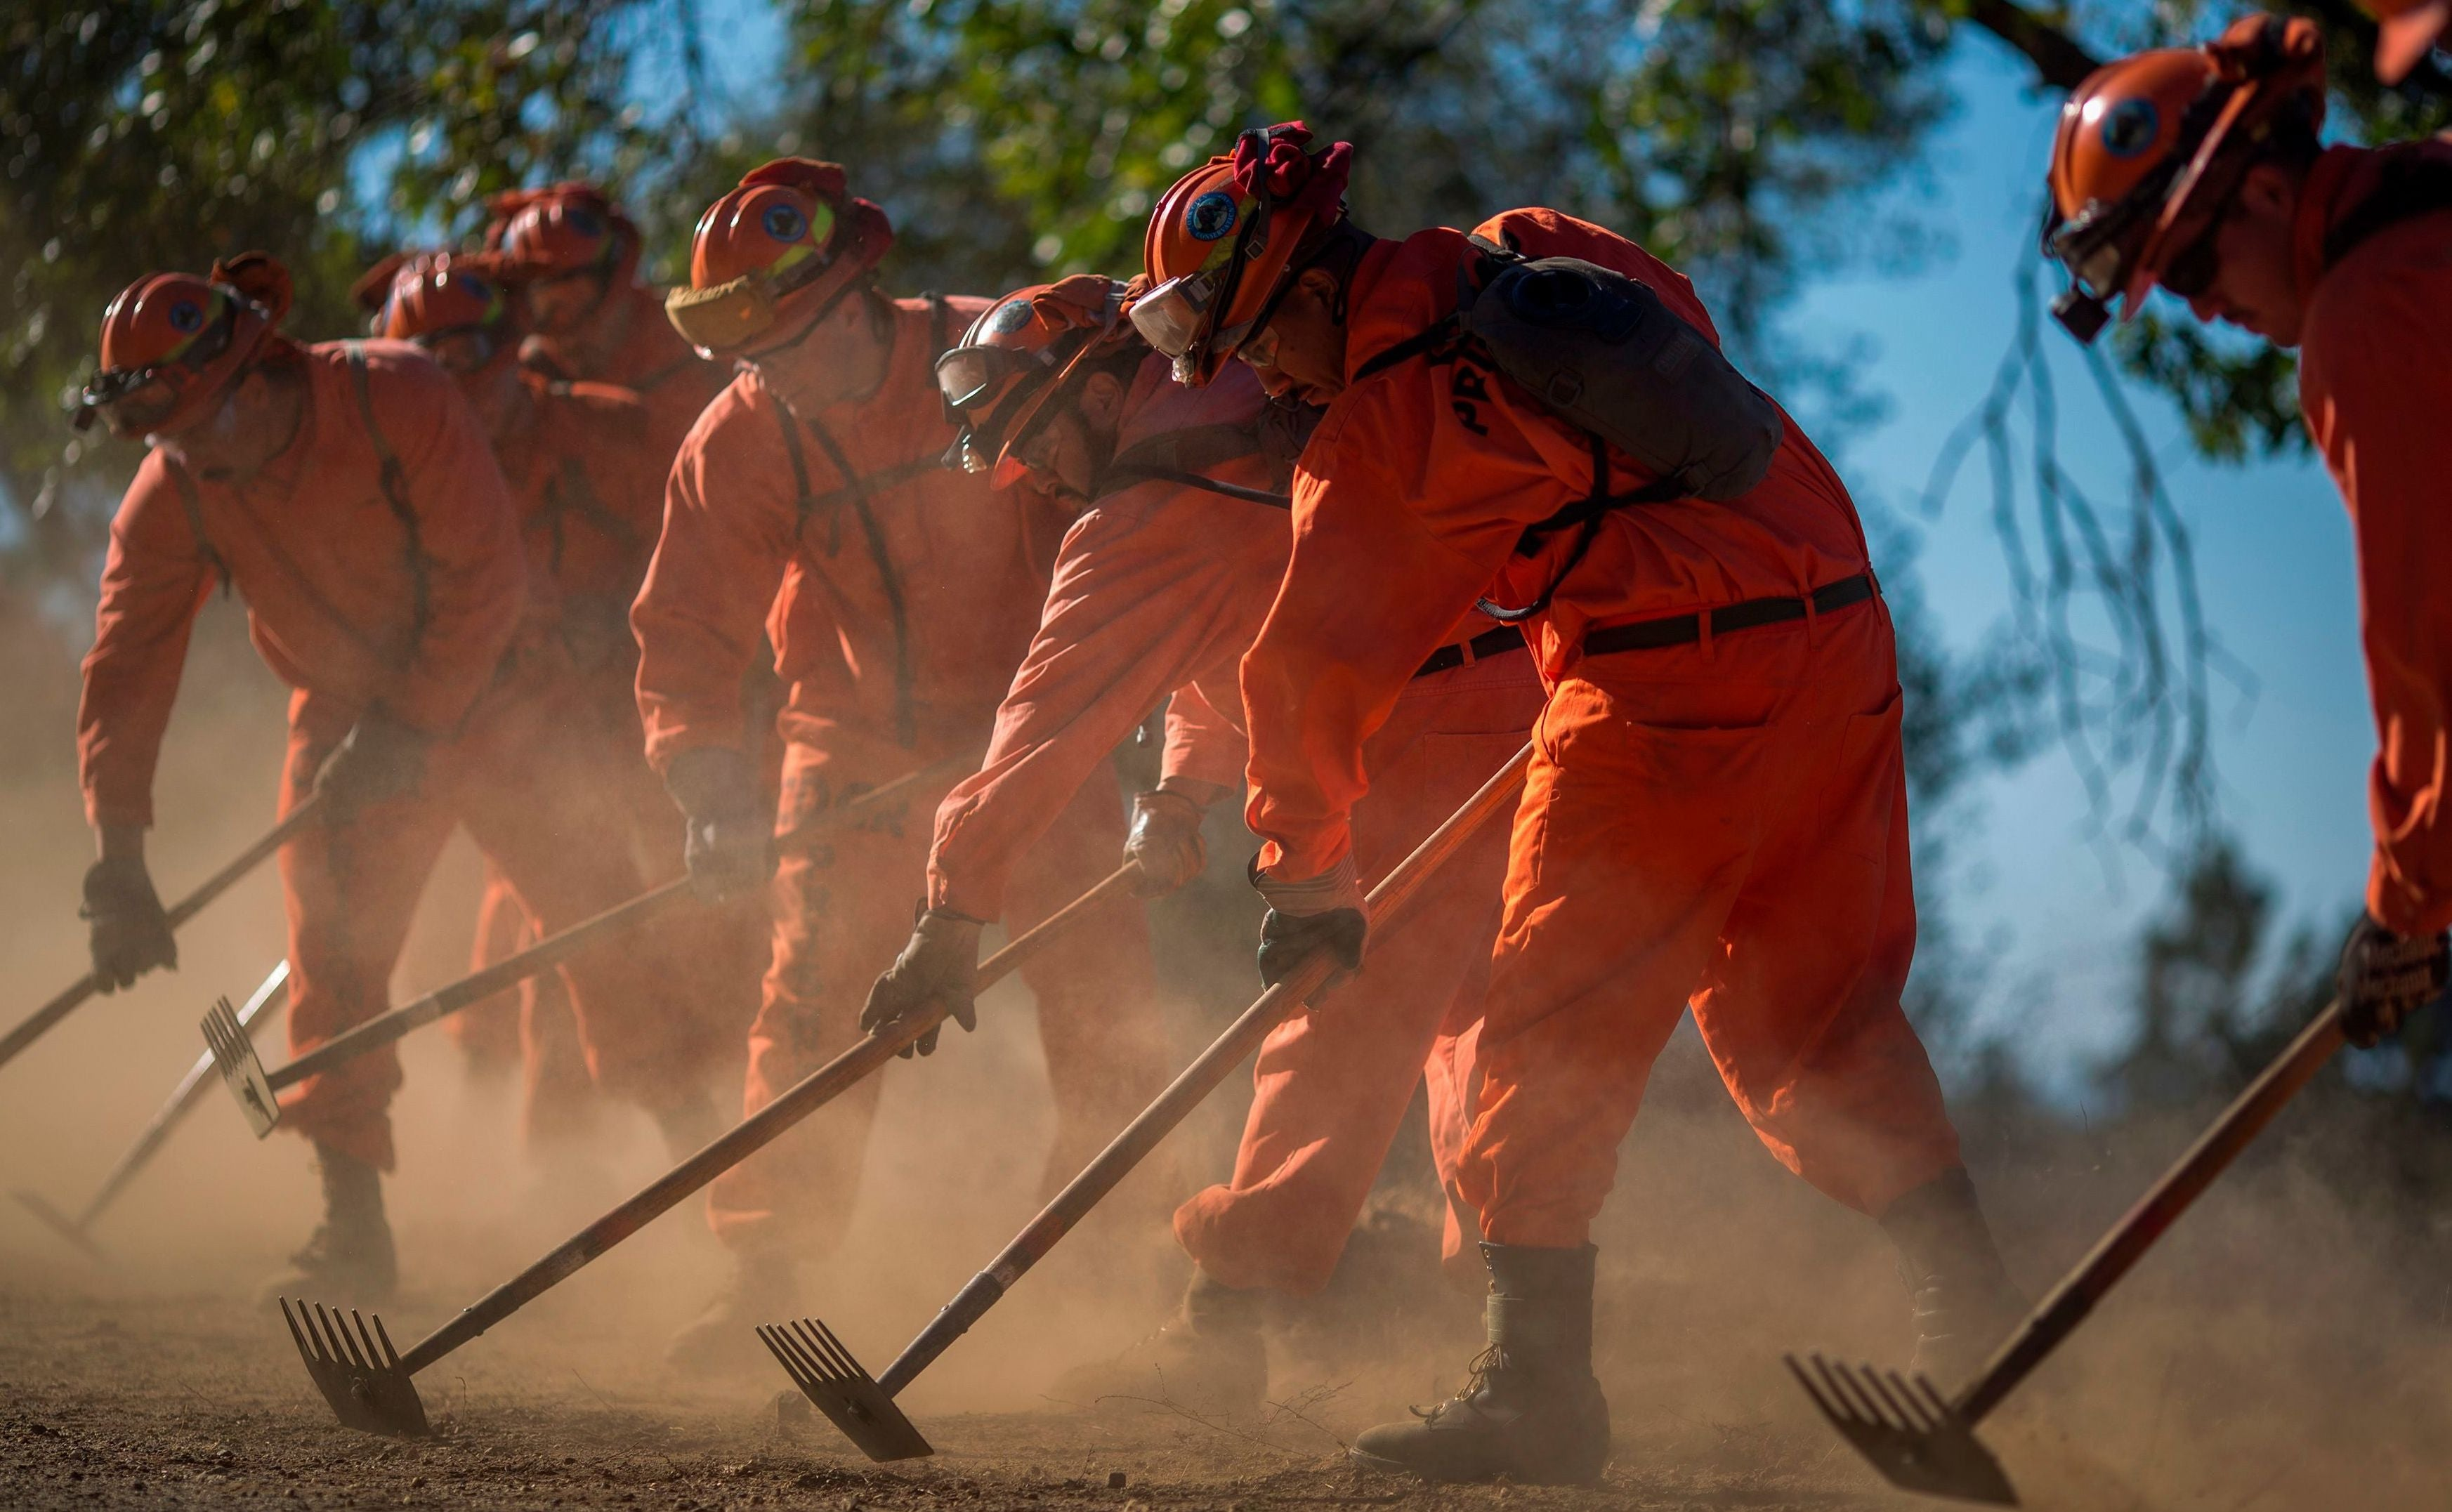 Prison Reform To Blame For Fire Fighting Labour Shortage, Says California